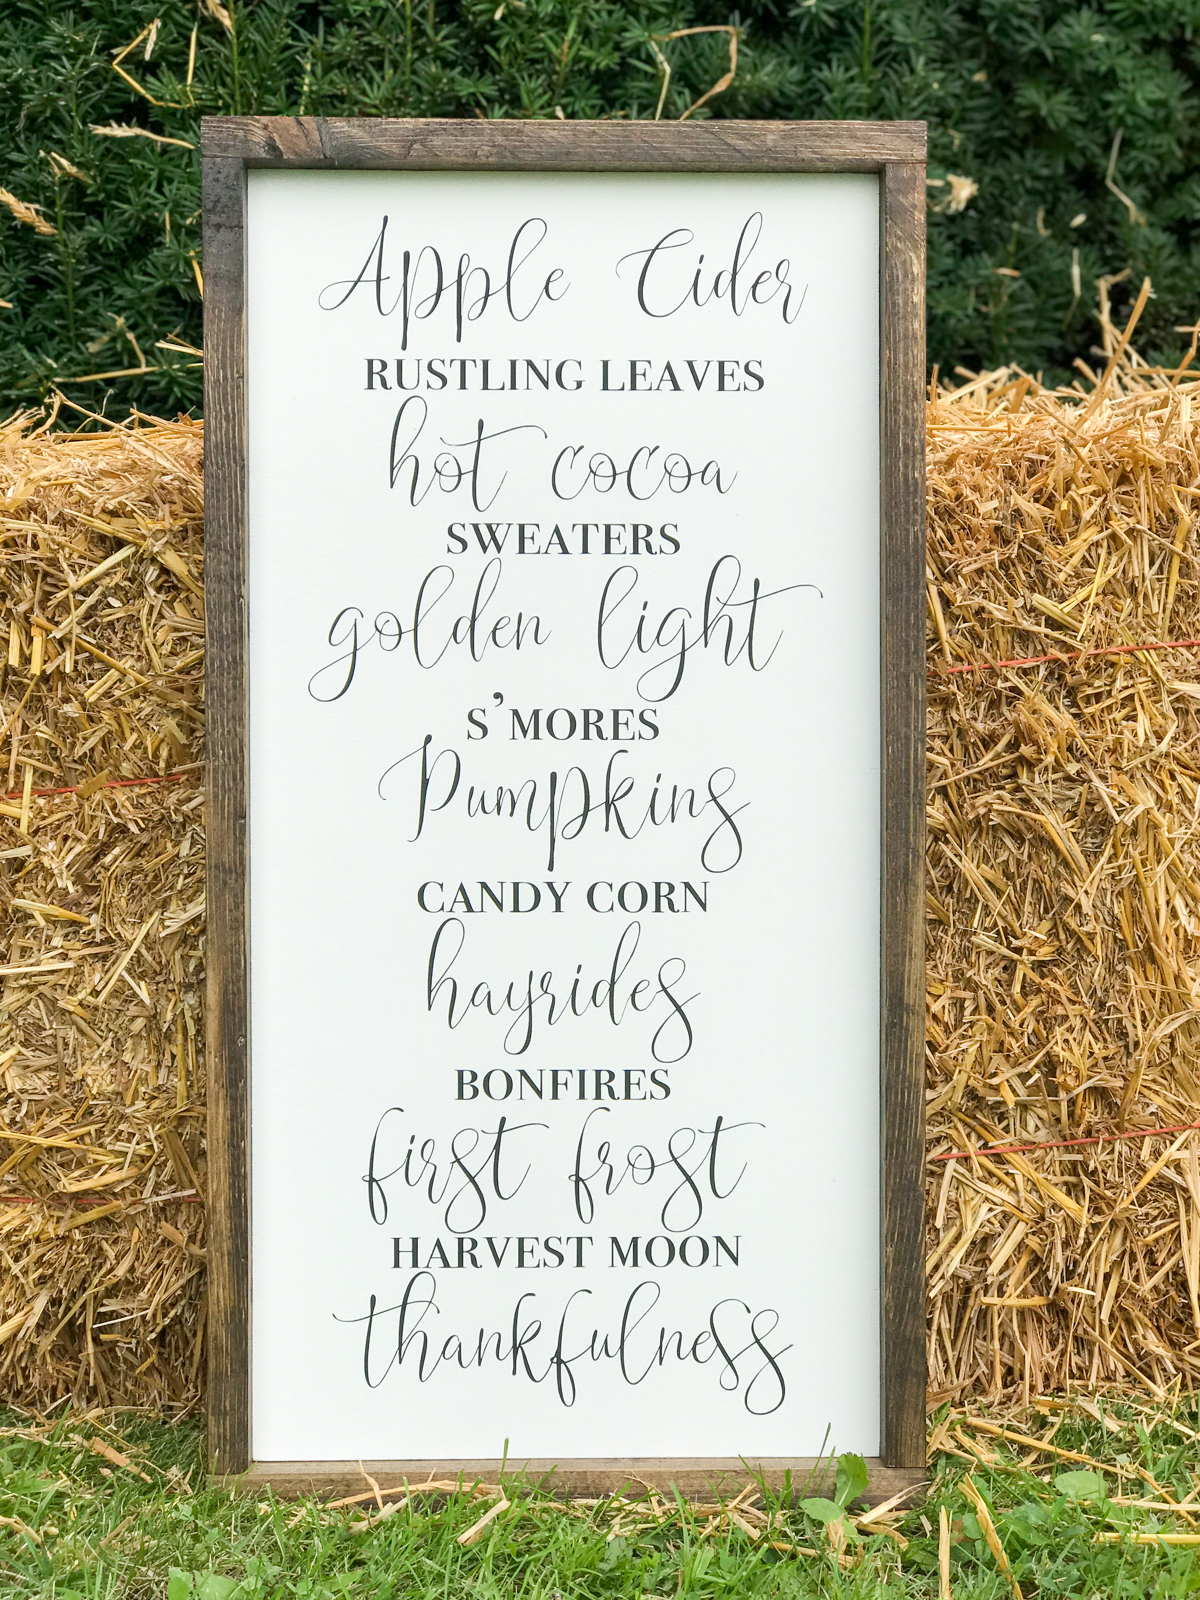 Farmhouse Fall Signs celebrating apple cider and all things fall.